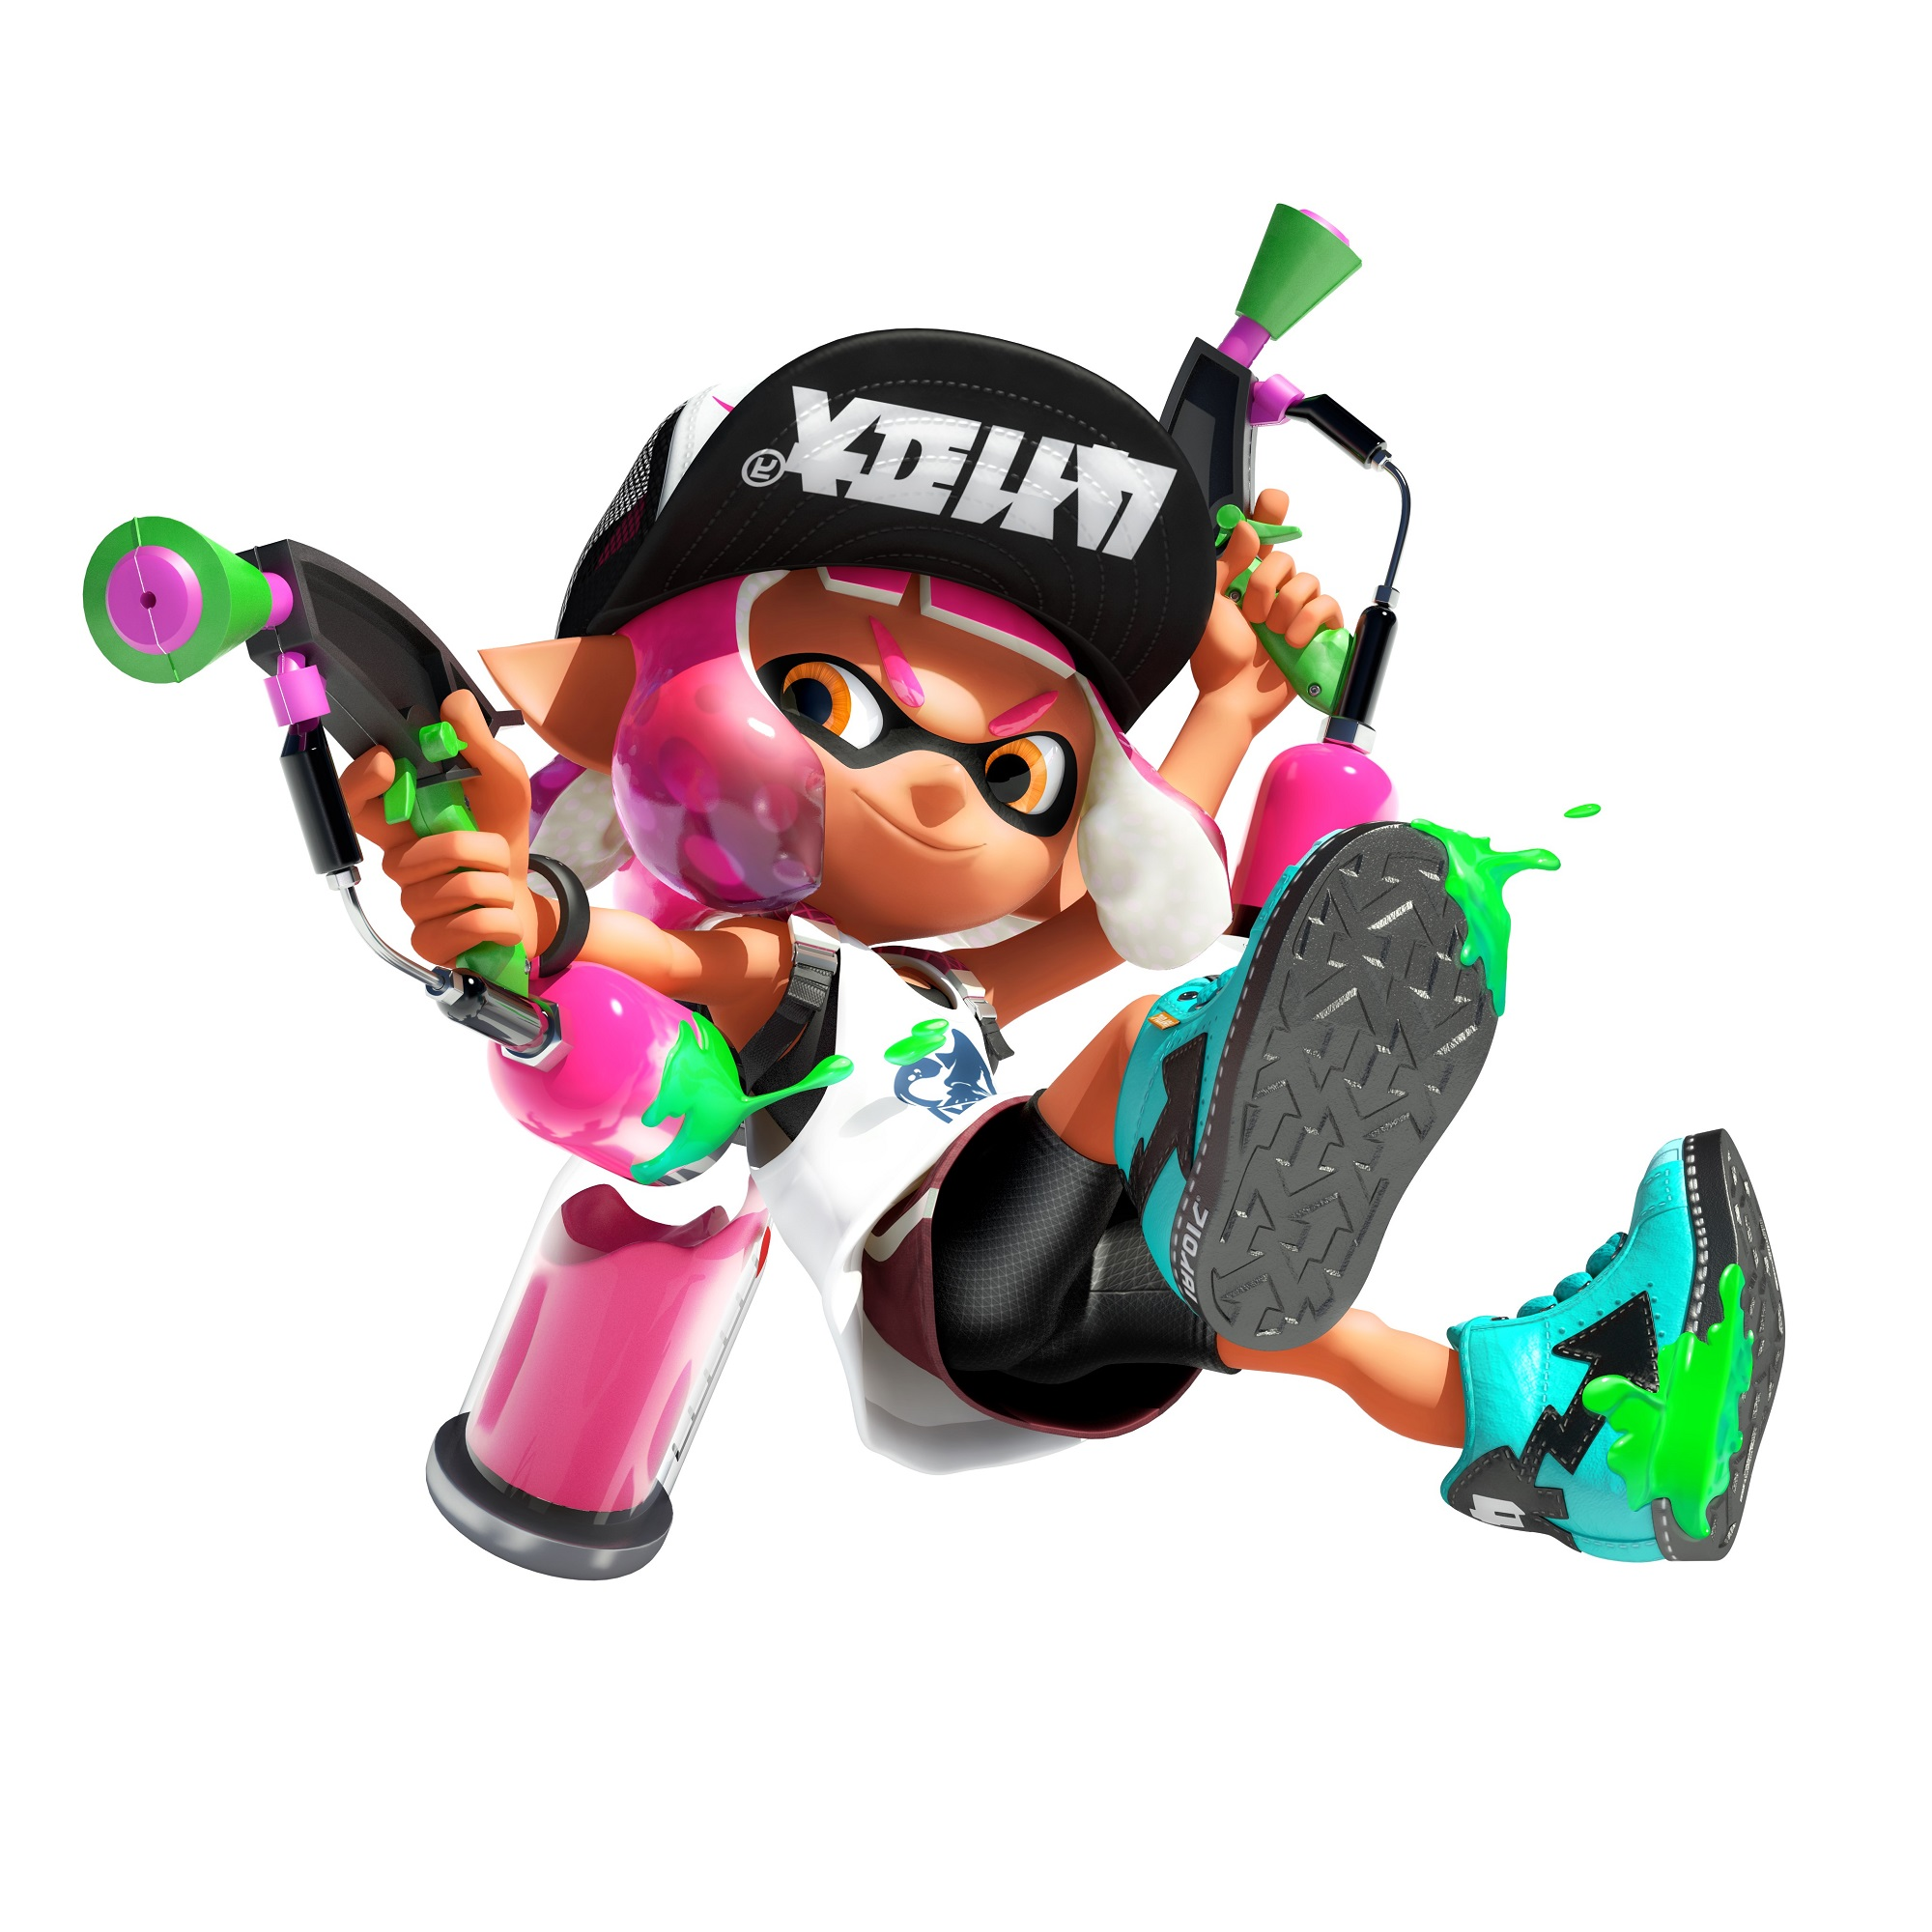 2 clipart splatoon. Announced for nintendo switch